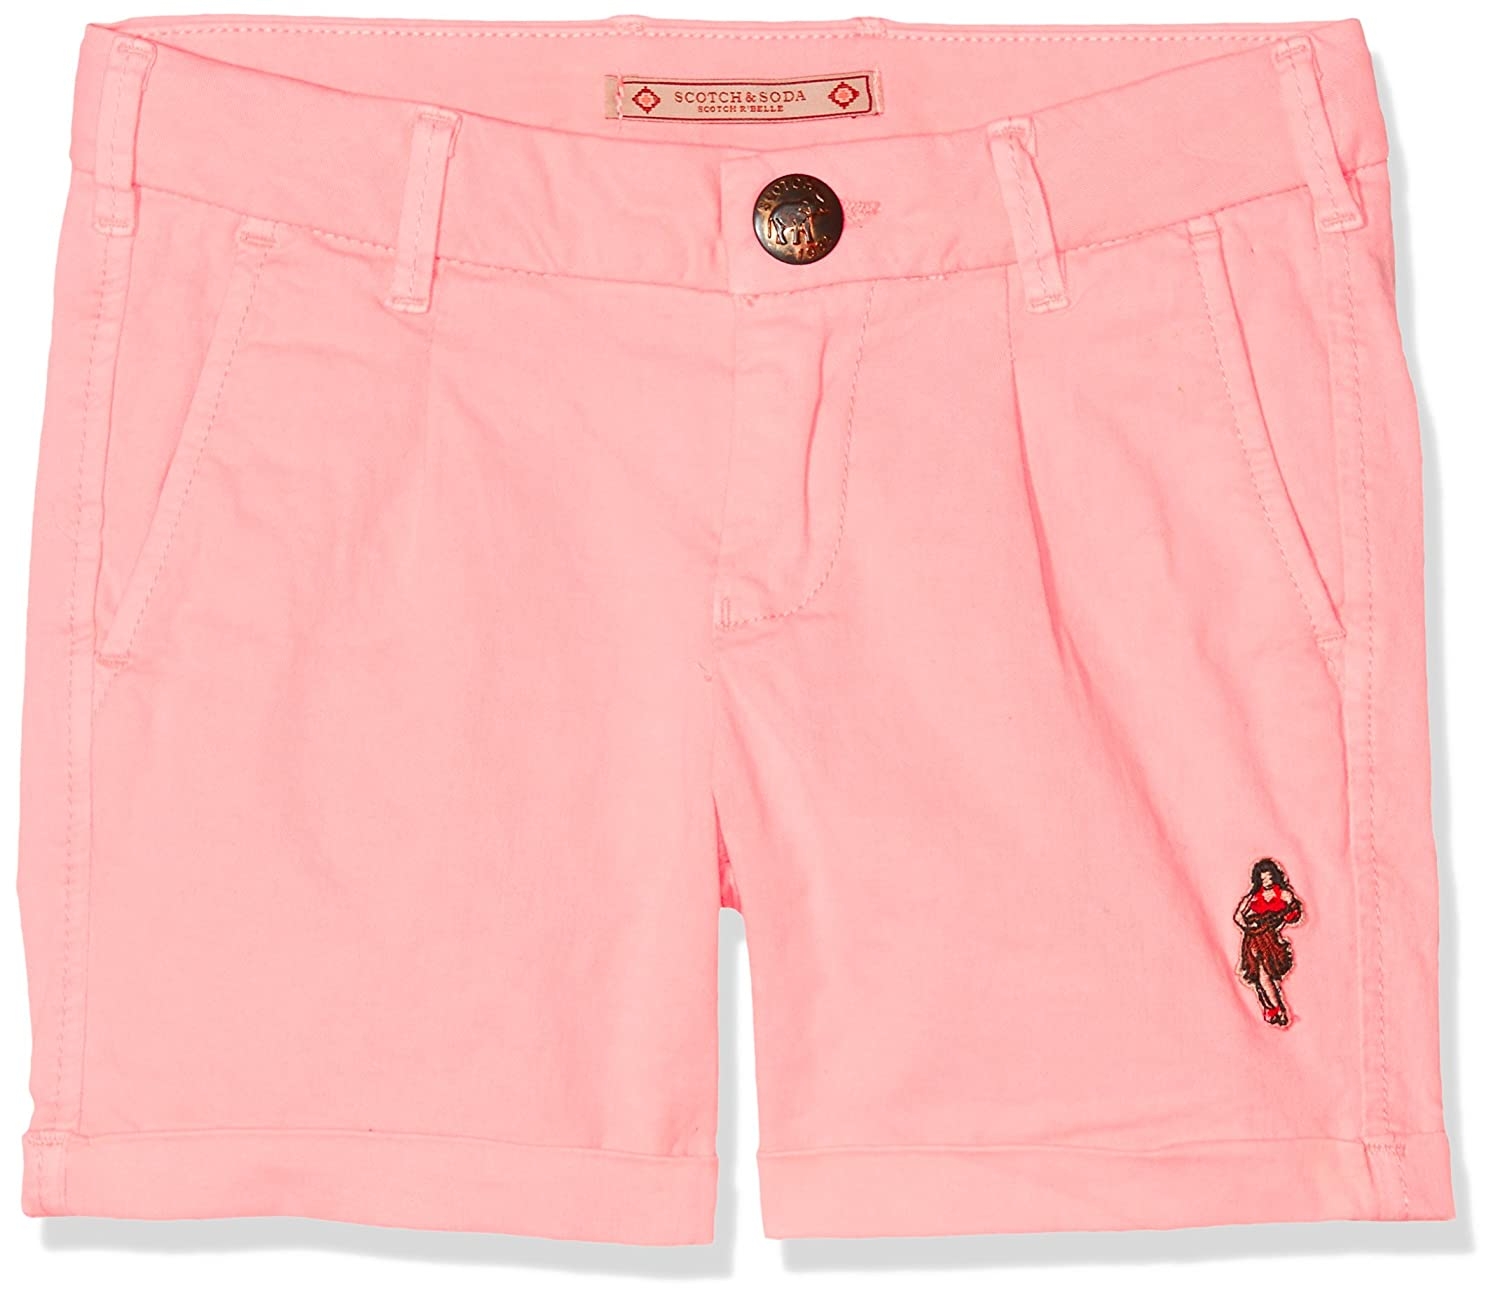 Scotch & Soda Chino Shorts, Pantaloncini Bambina Scotch & Soda RŽBelle 143969